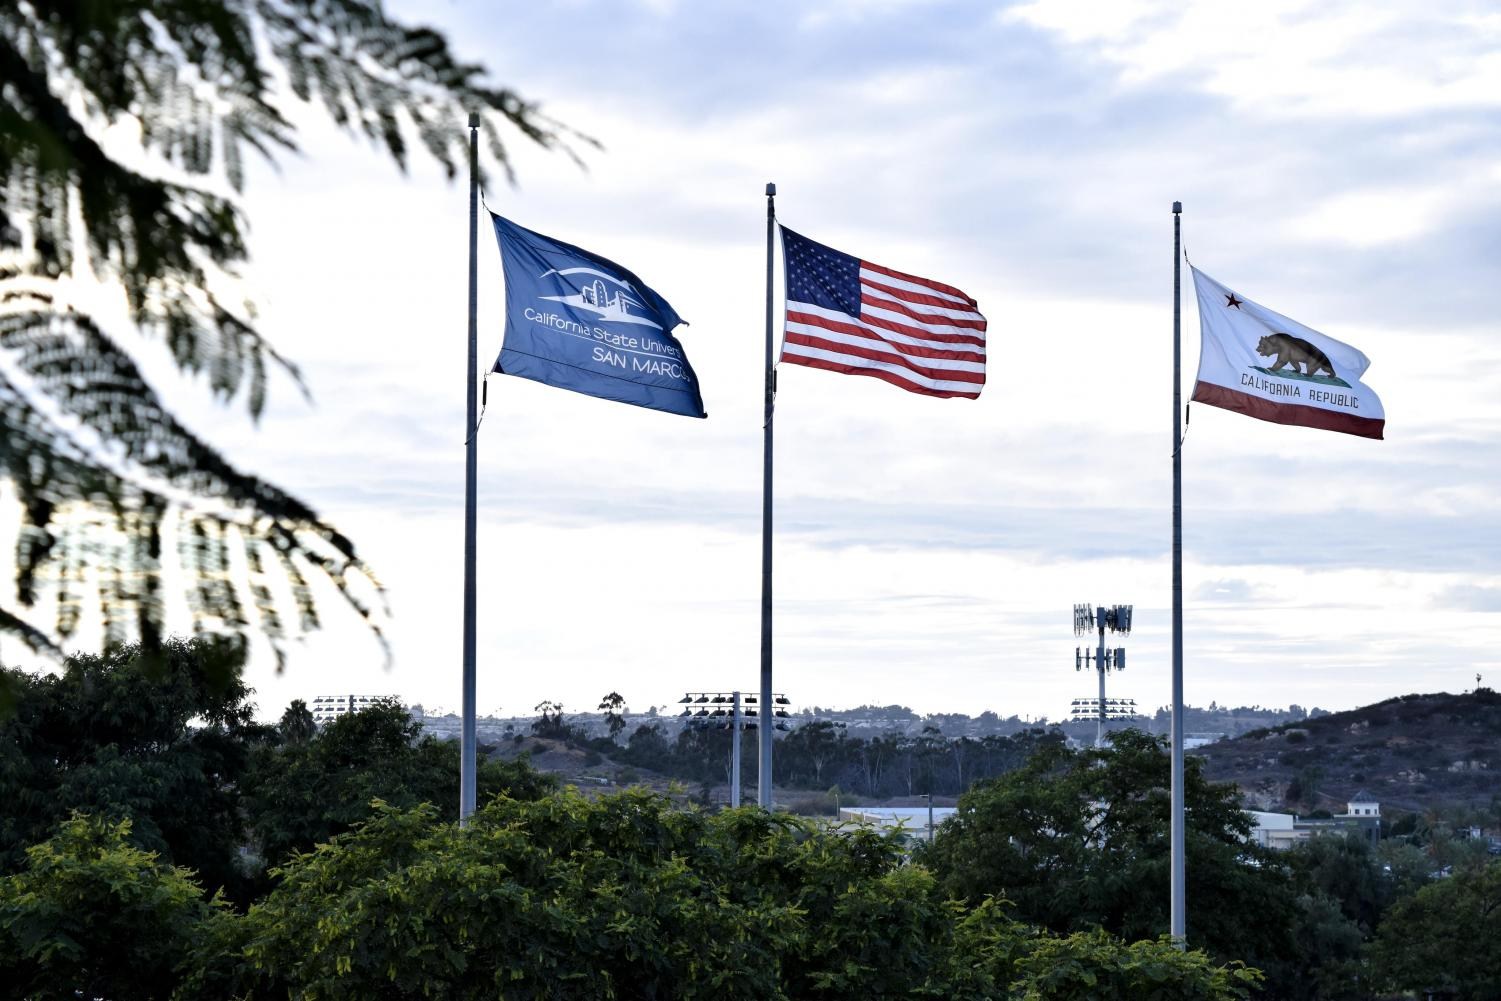 The American flag flies high in front of the CSUSM campus.